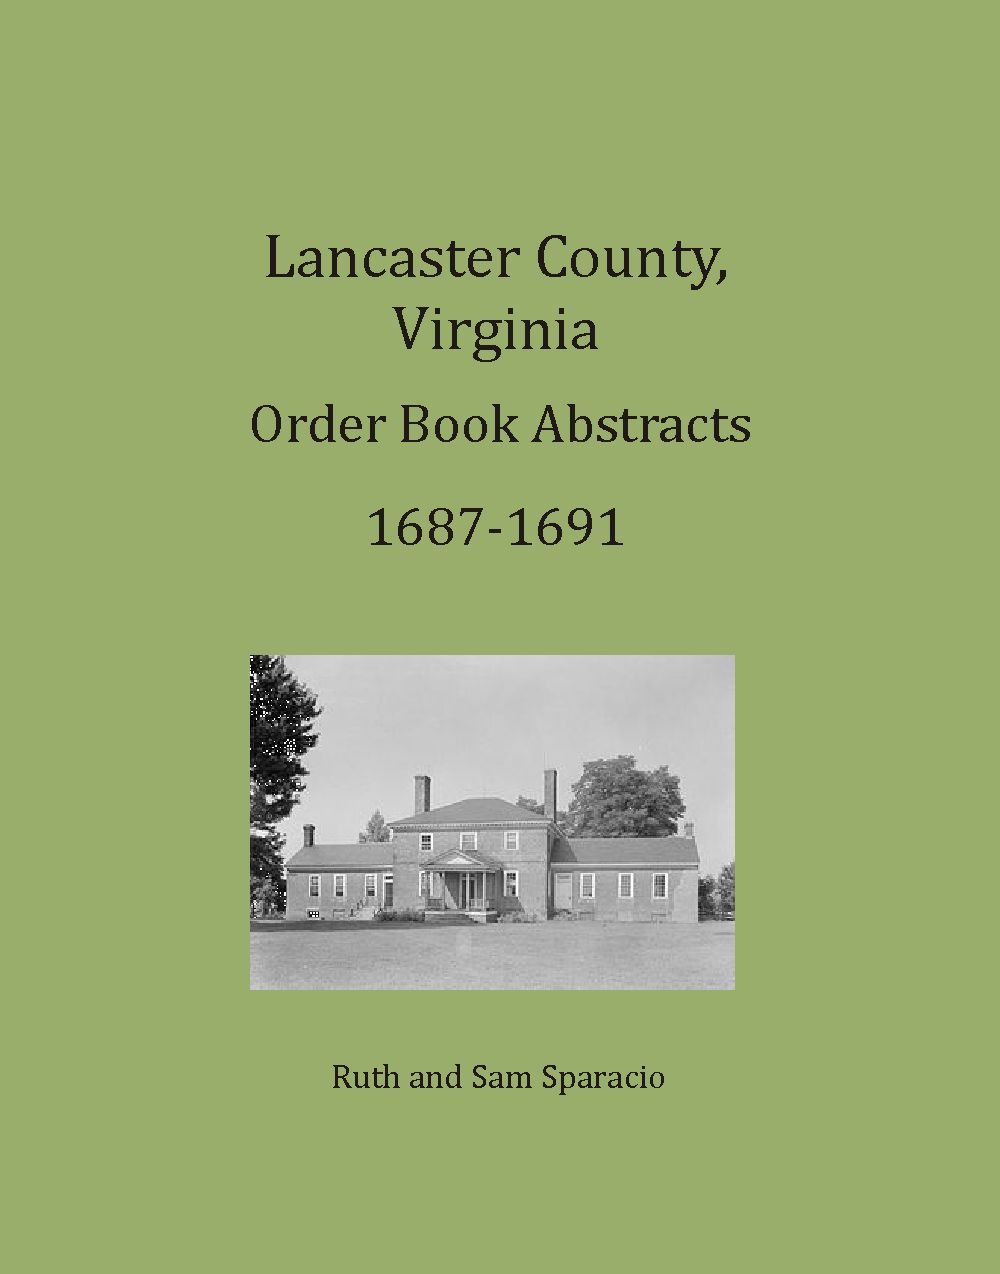 Lancaster County, Virginia Order Book, 1687-1691